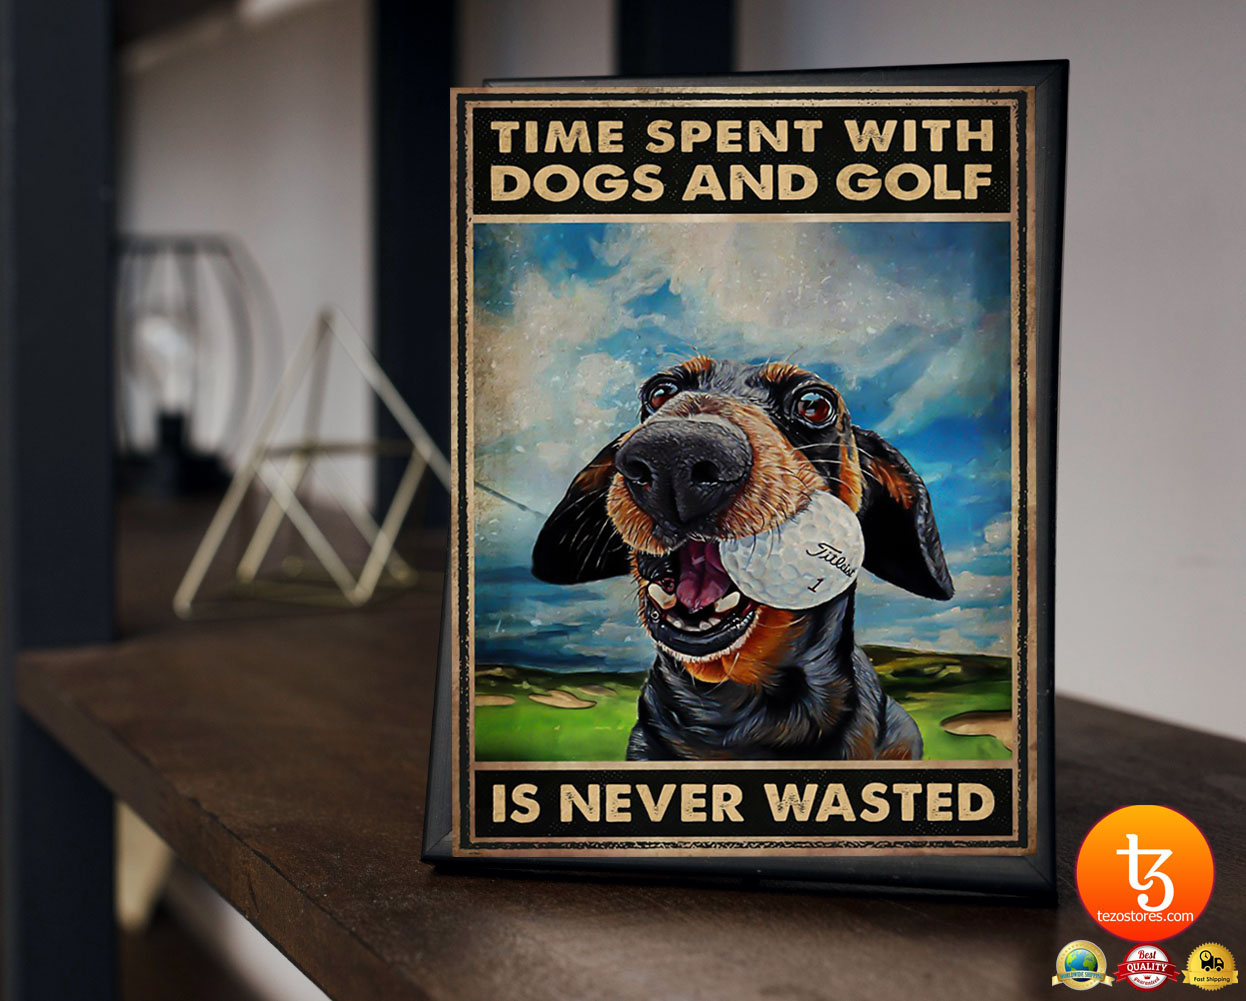 Time spent with dogs and golf is never wasted poster 3